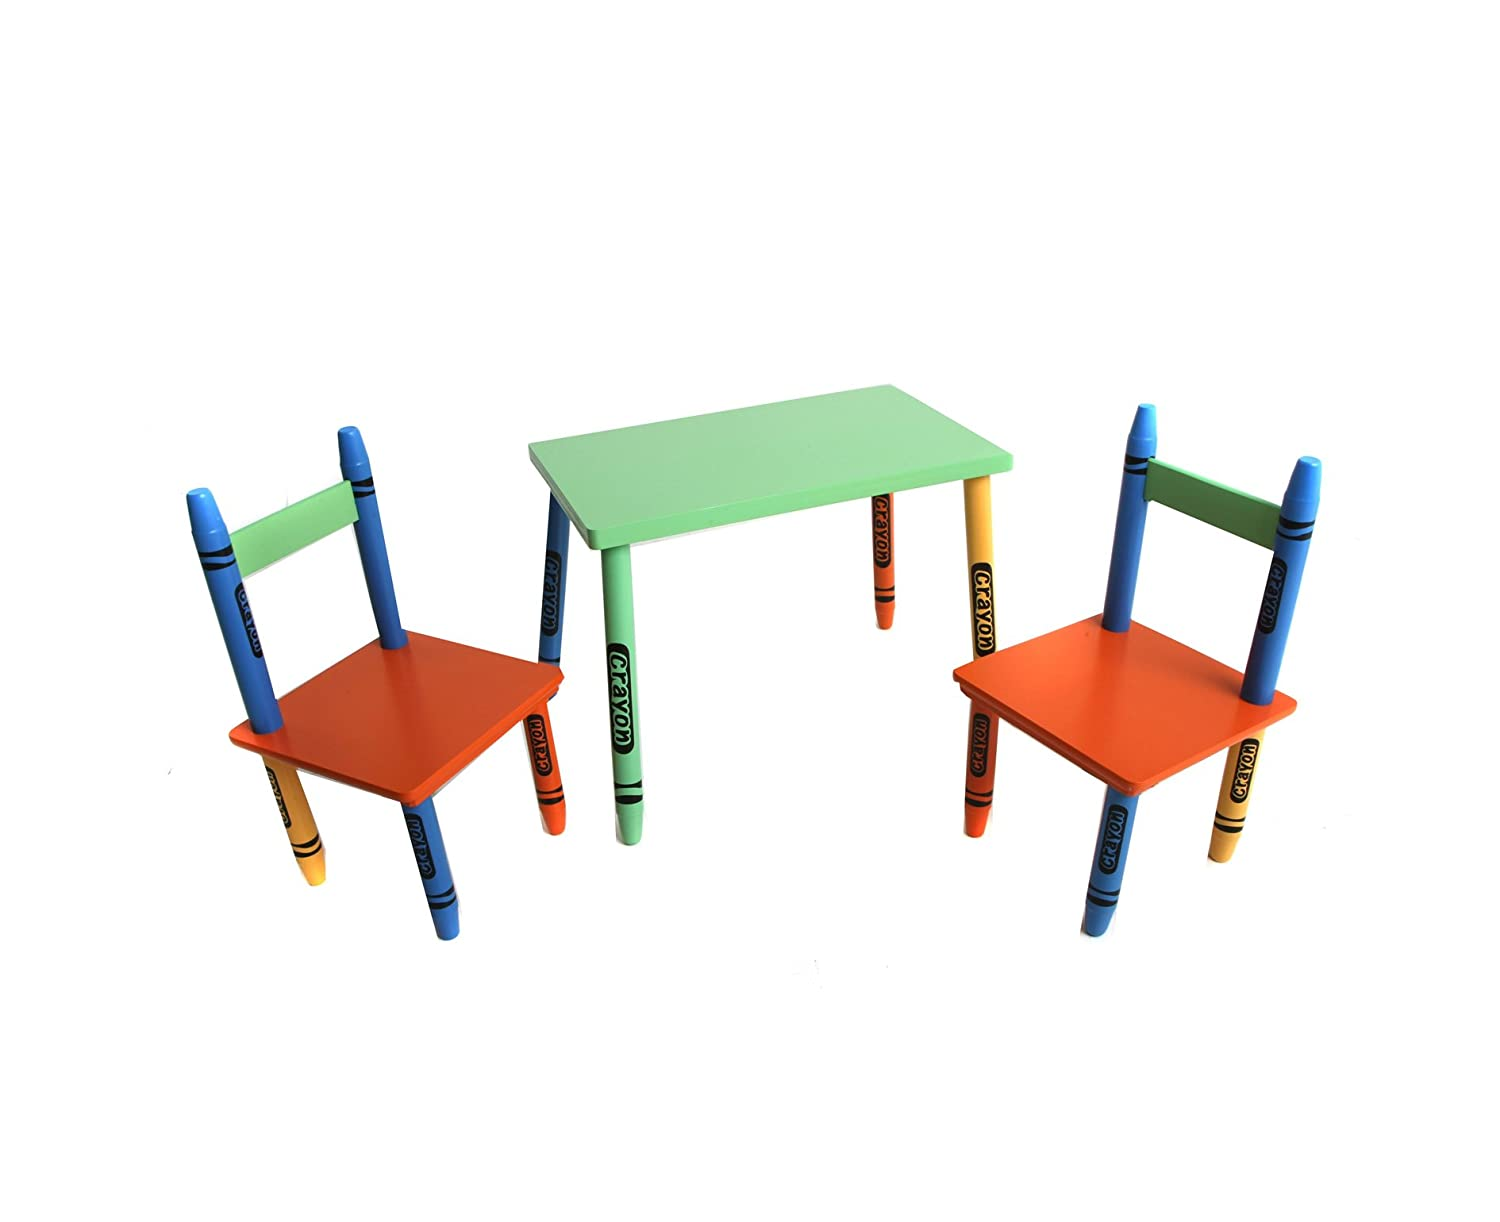 Childrens Table and Chair Set: Amazon.co.uk: Kitchen & Home